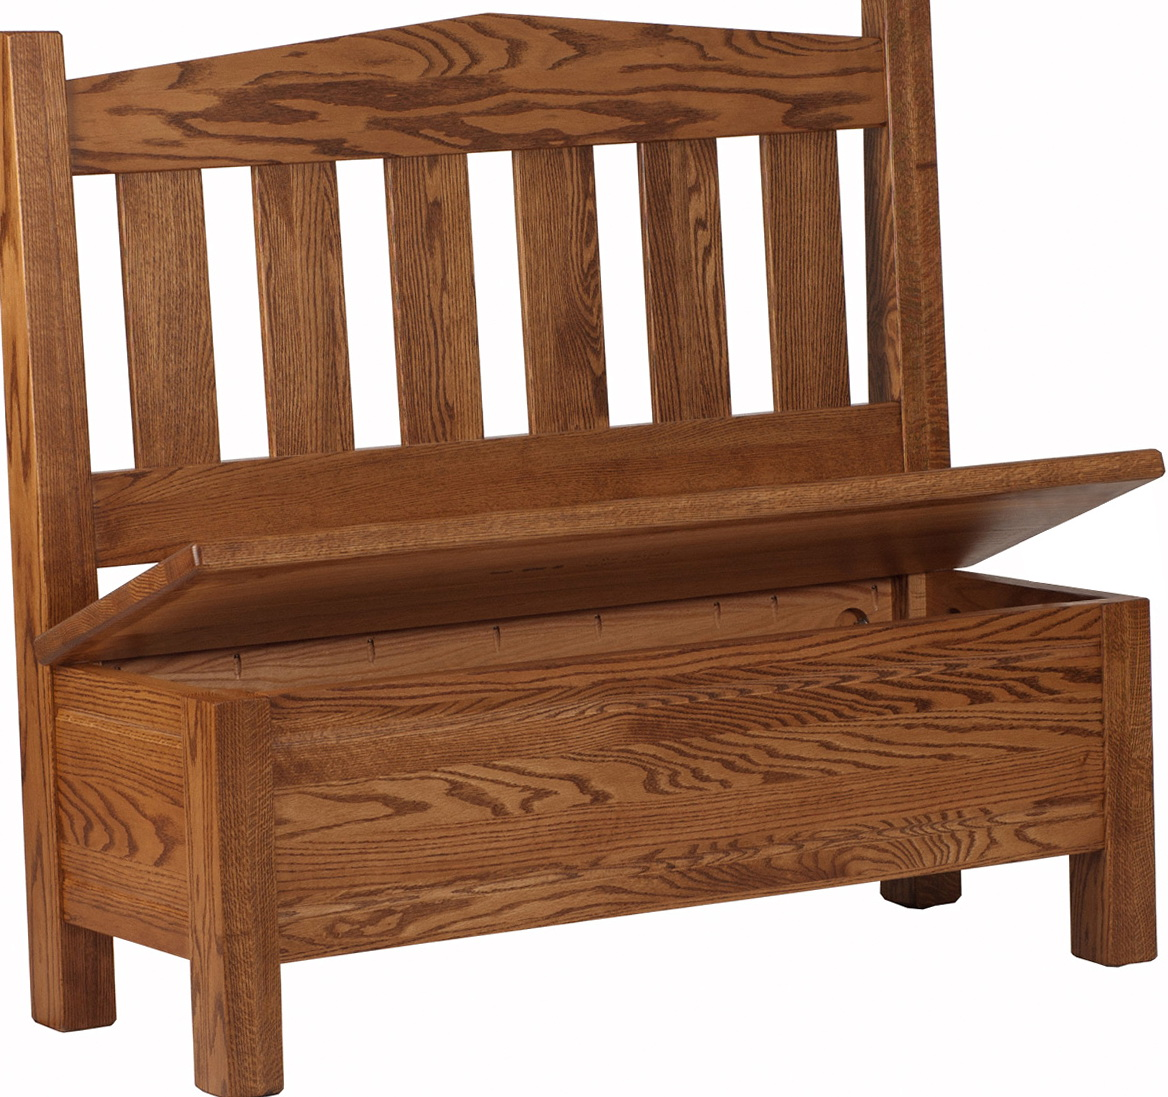 Dining Room Bench With Storage